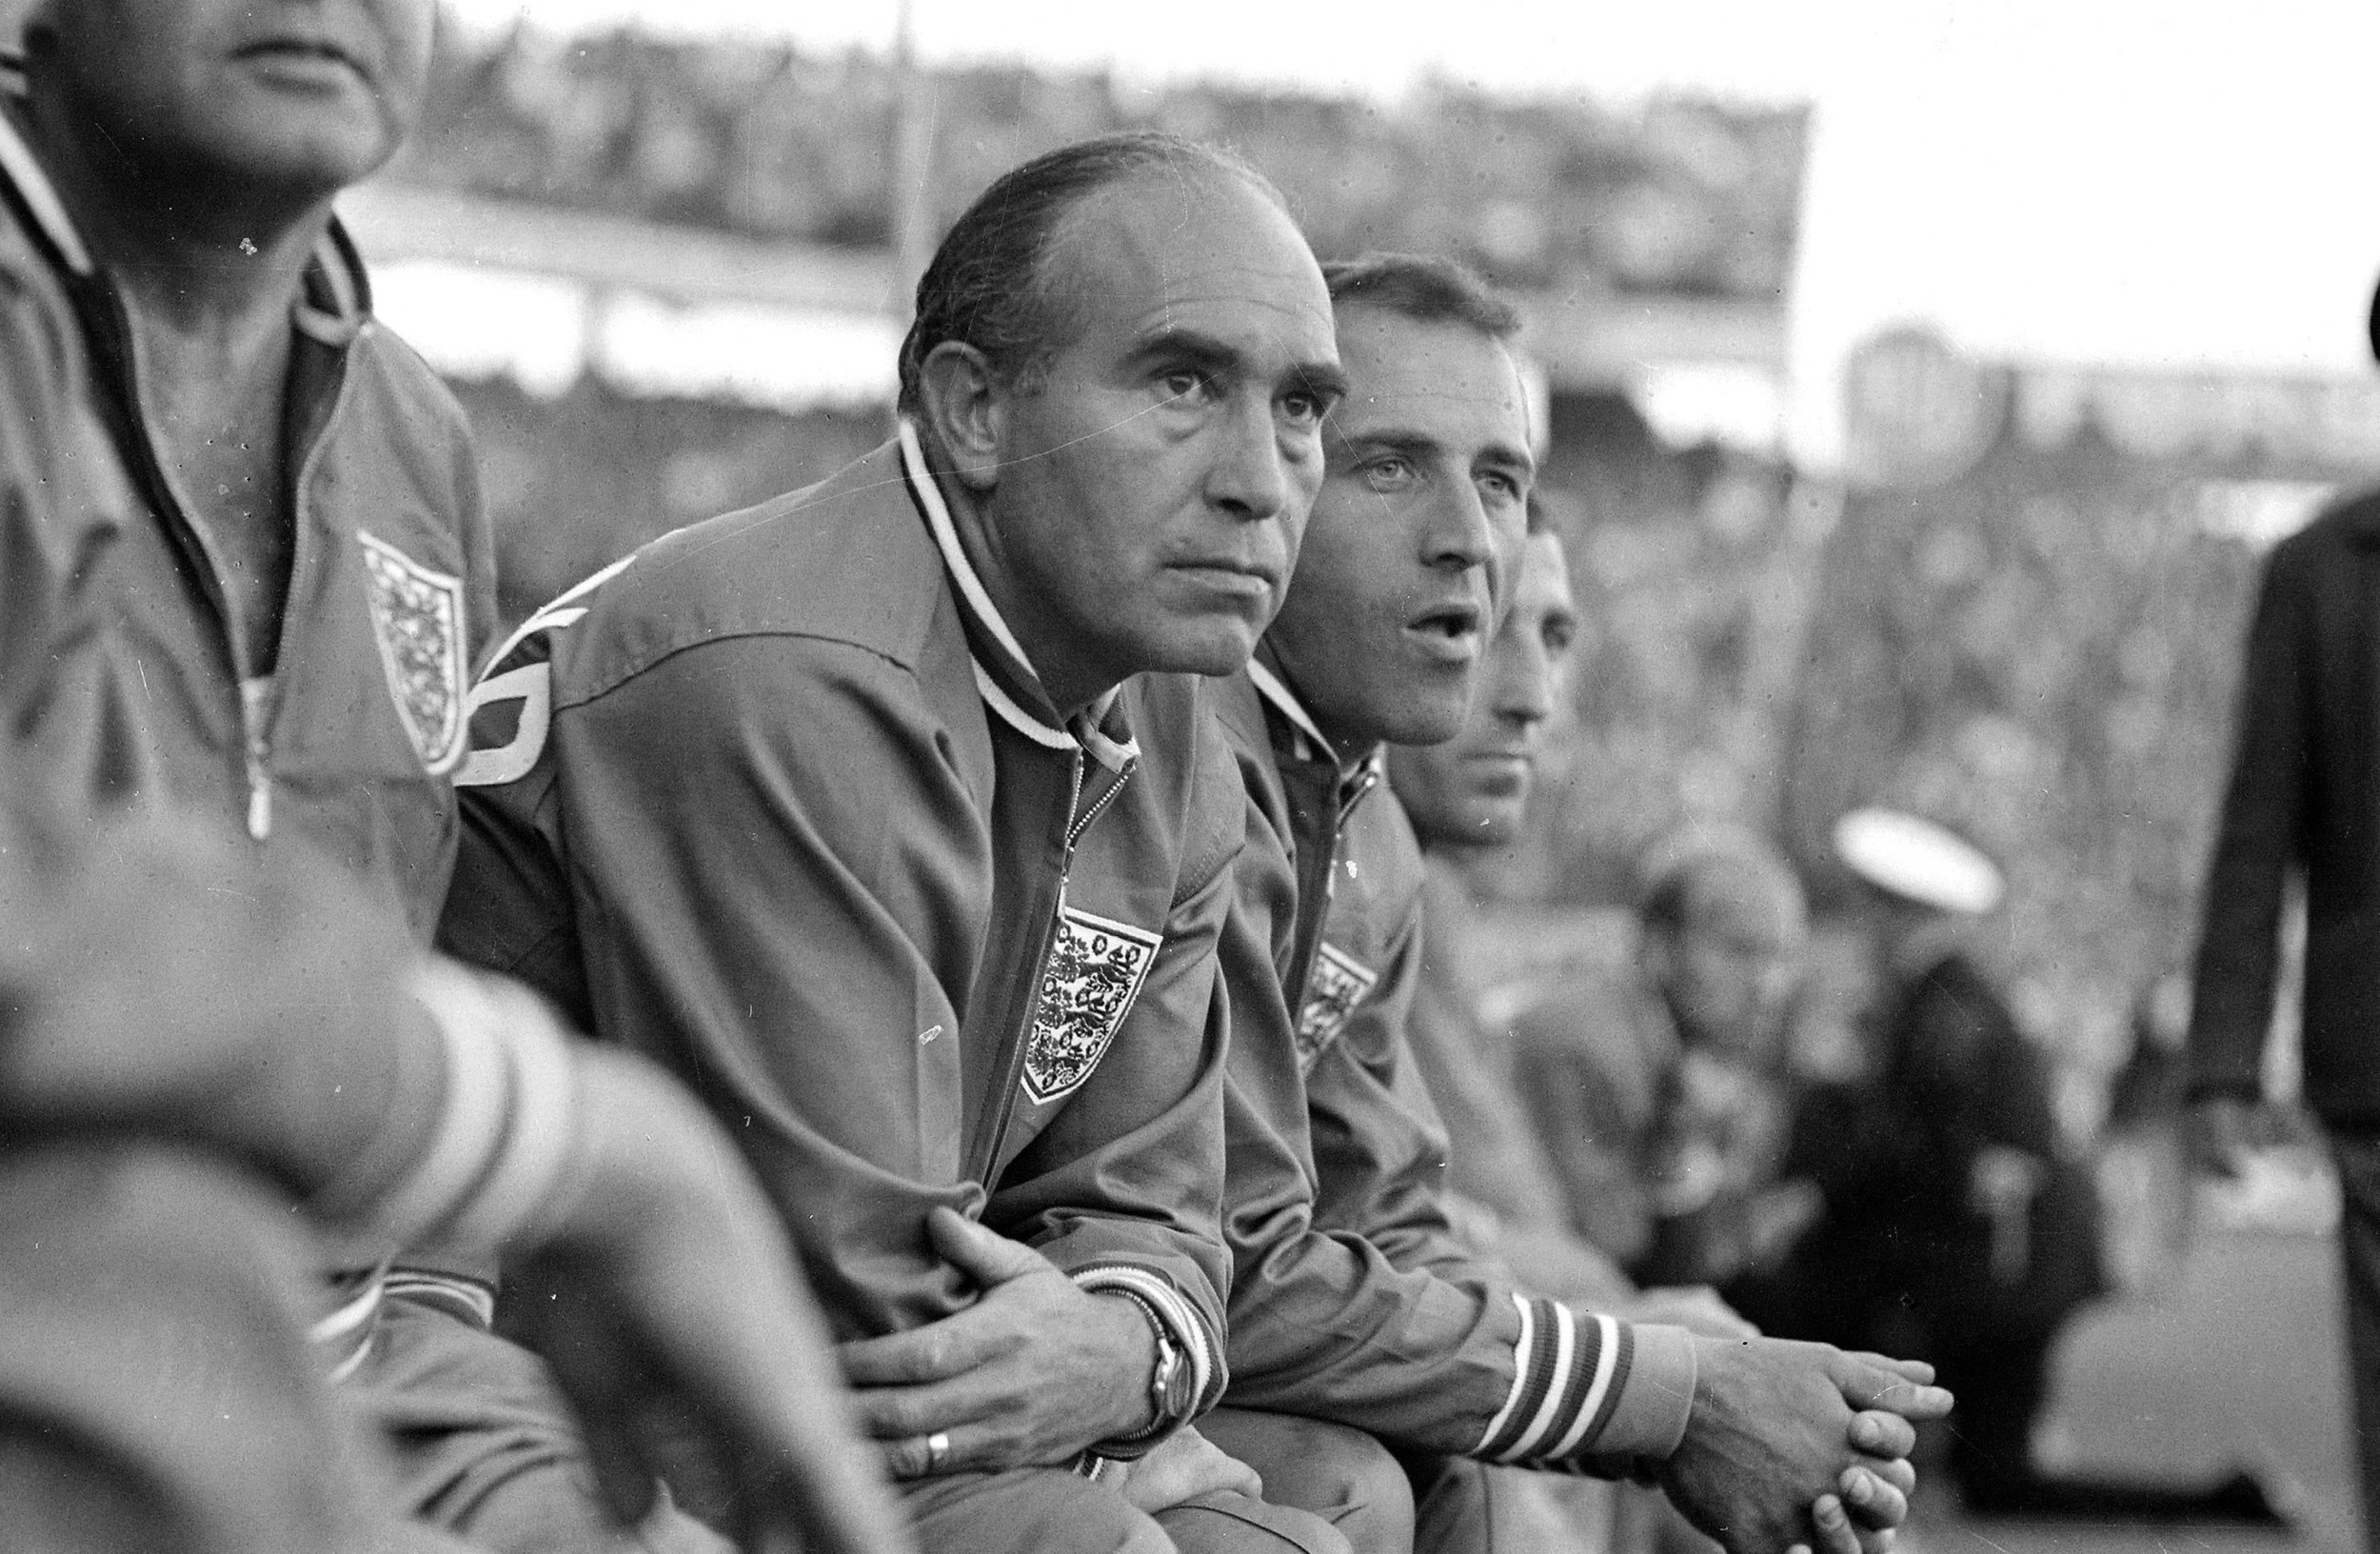 Alf Ramsey, player at Tottenham Hotspur 1949-55; England manager 1963-74